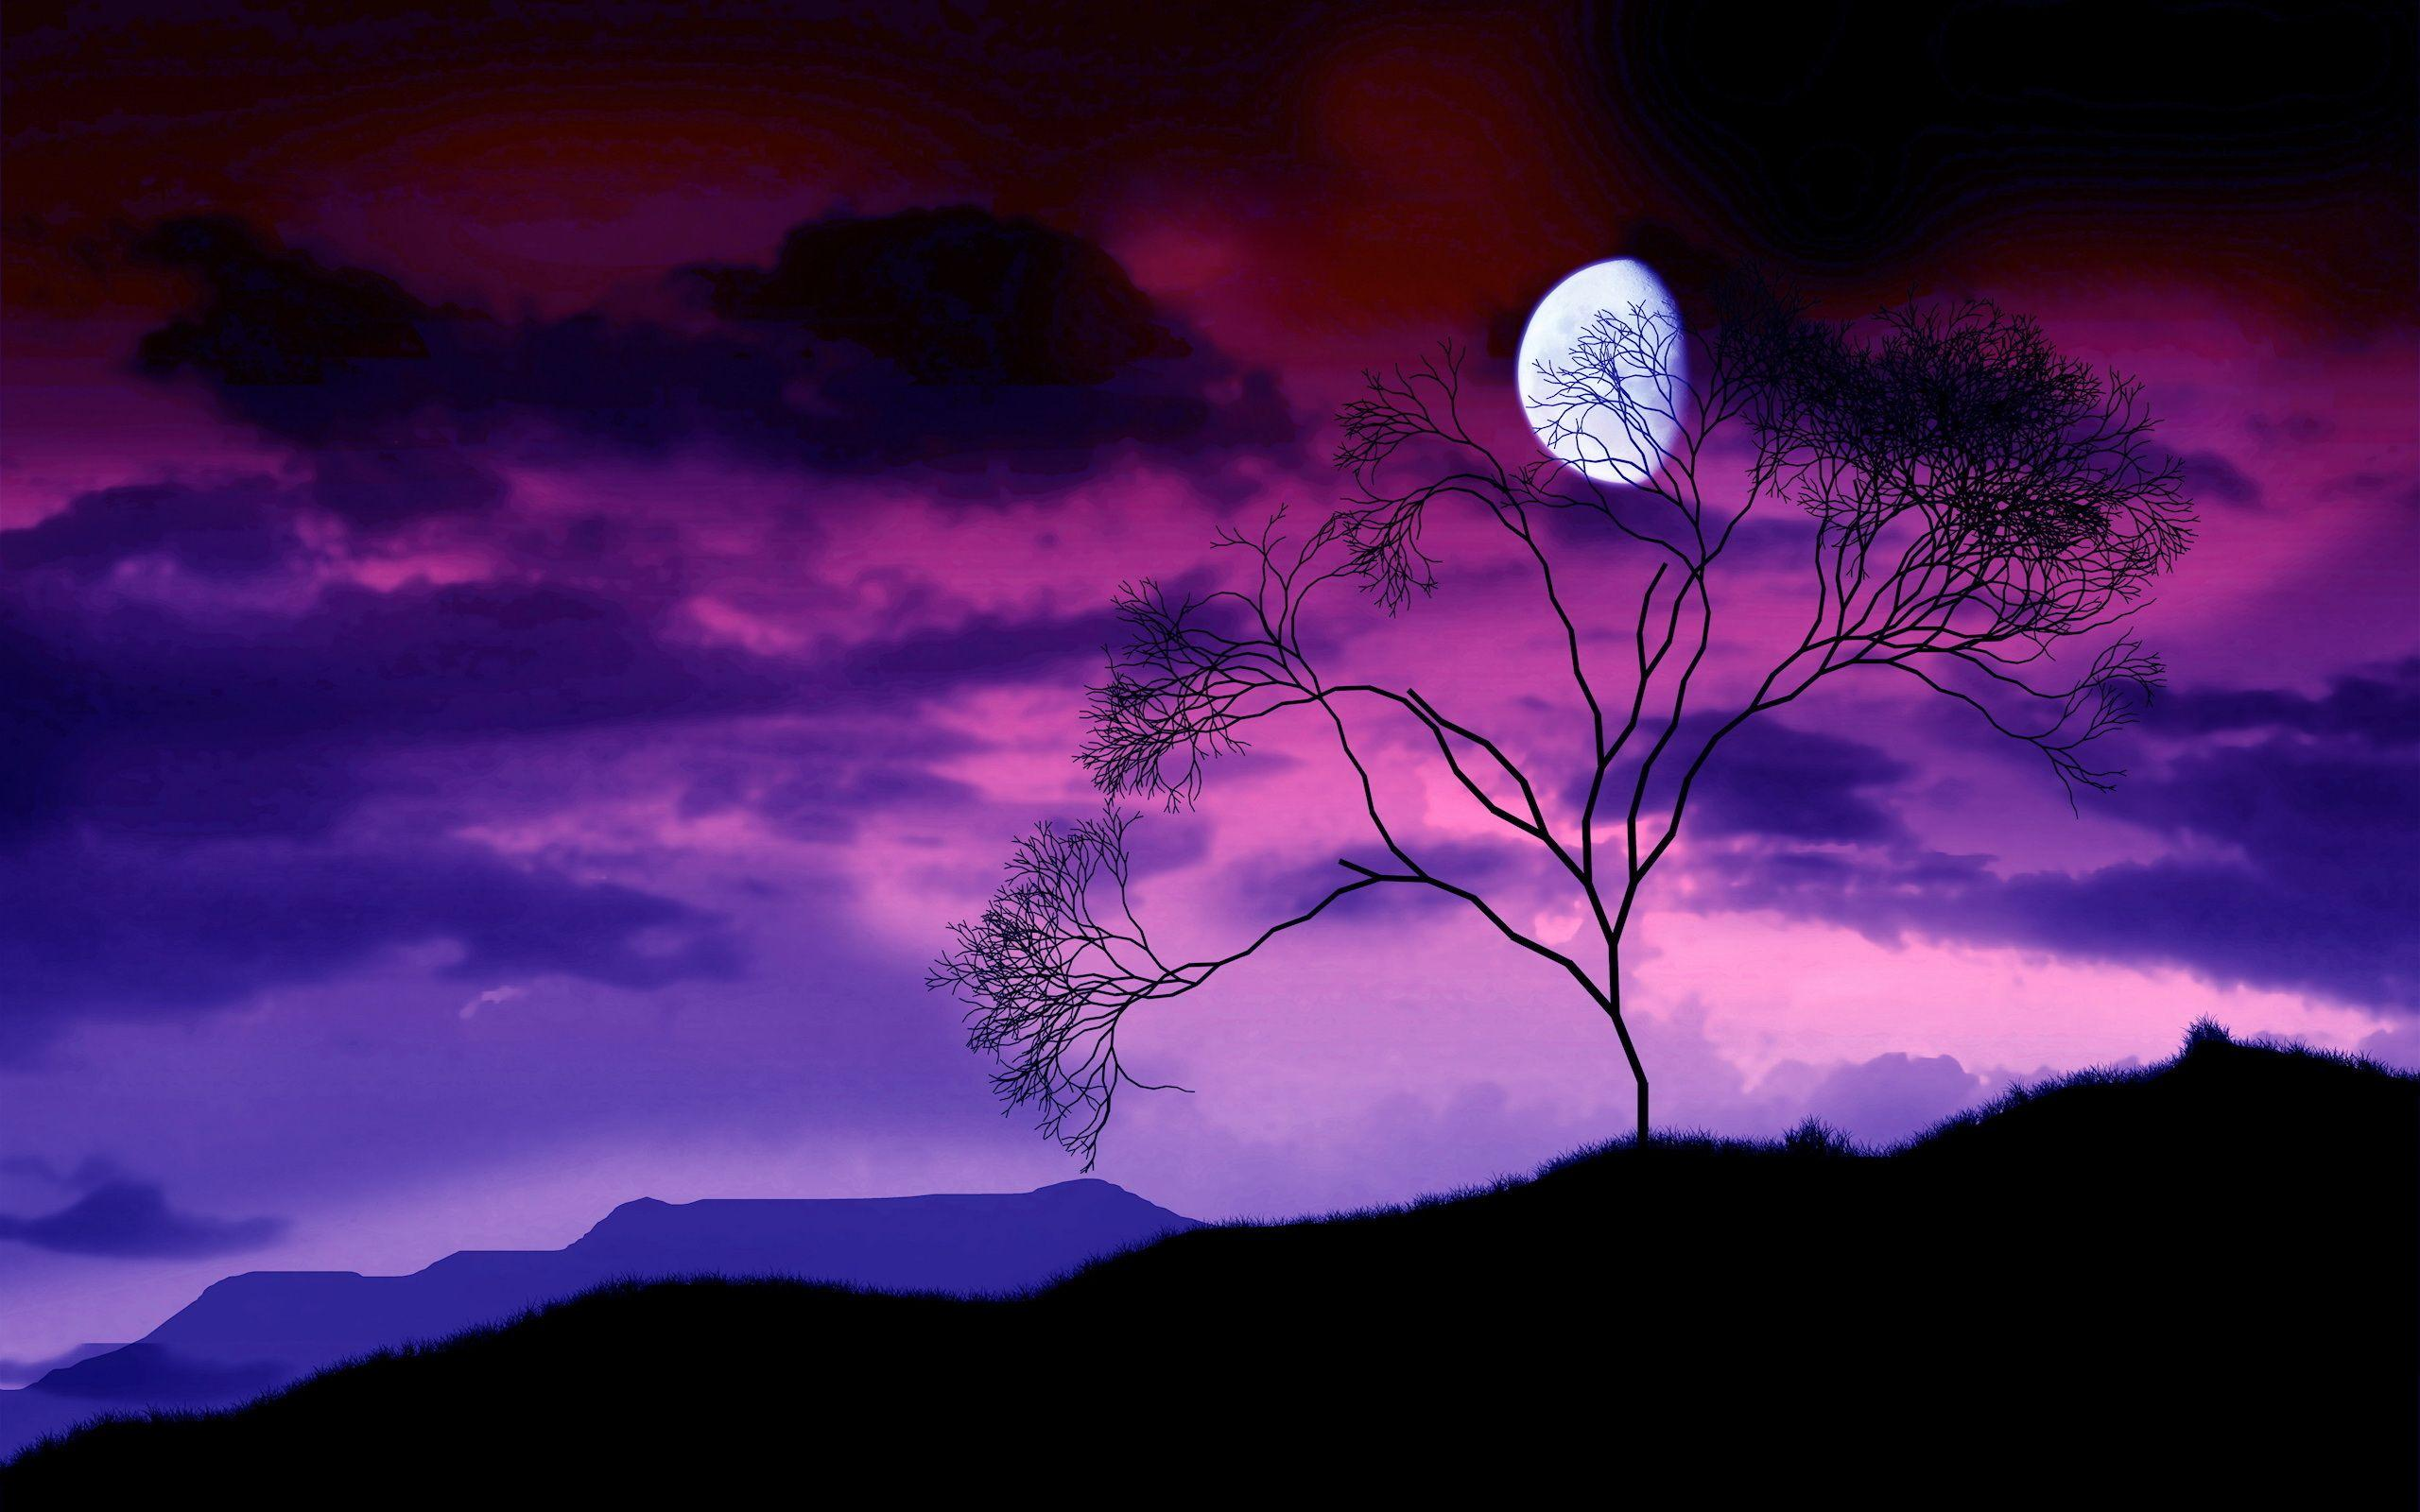 Artistic night scene of a gibbous moon in a sky with purple and ...